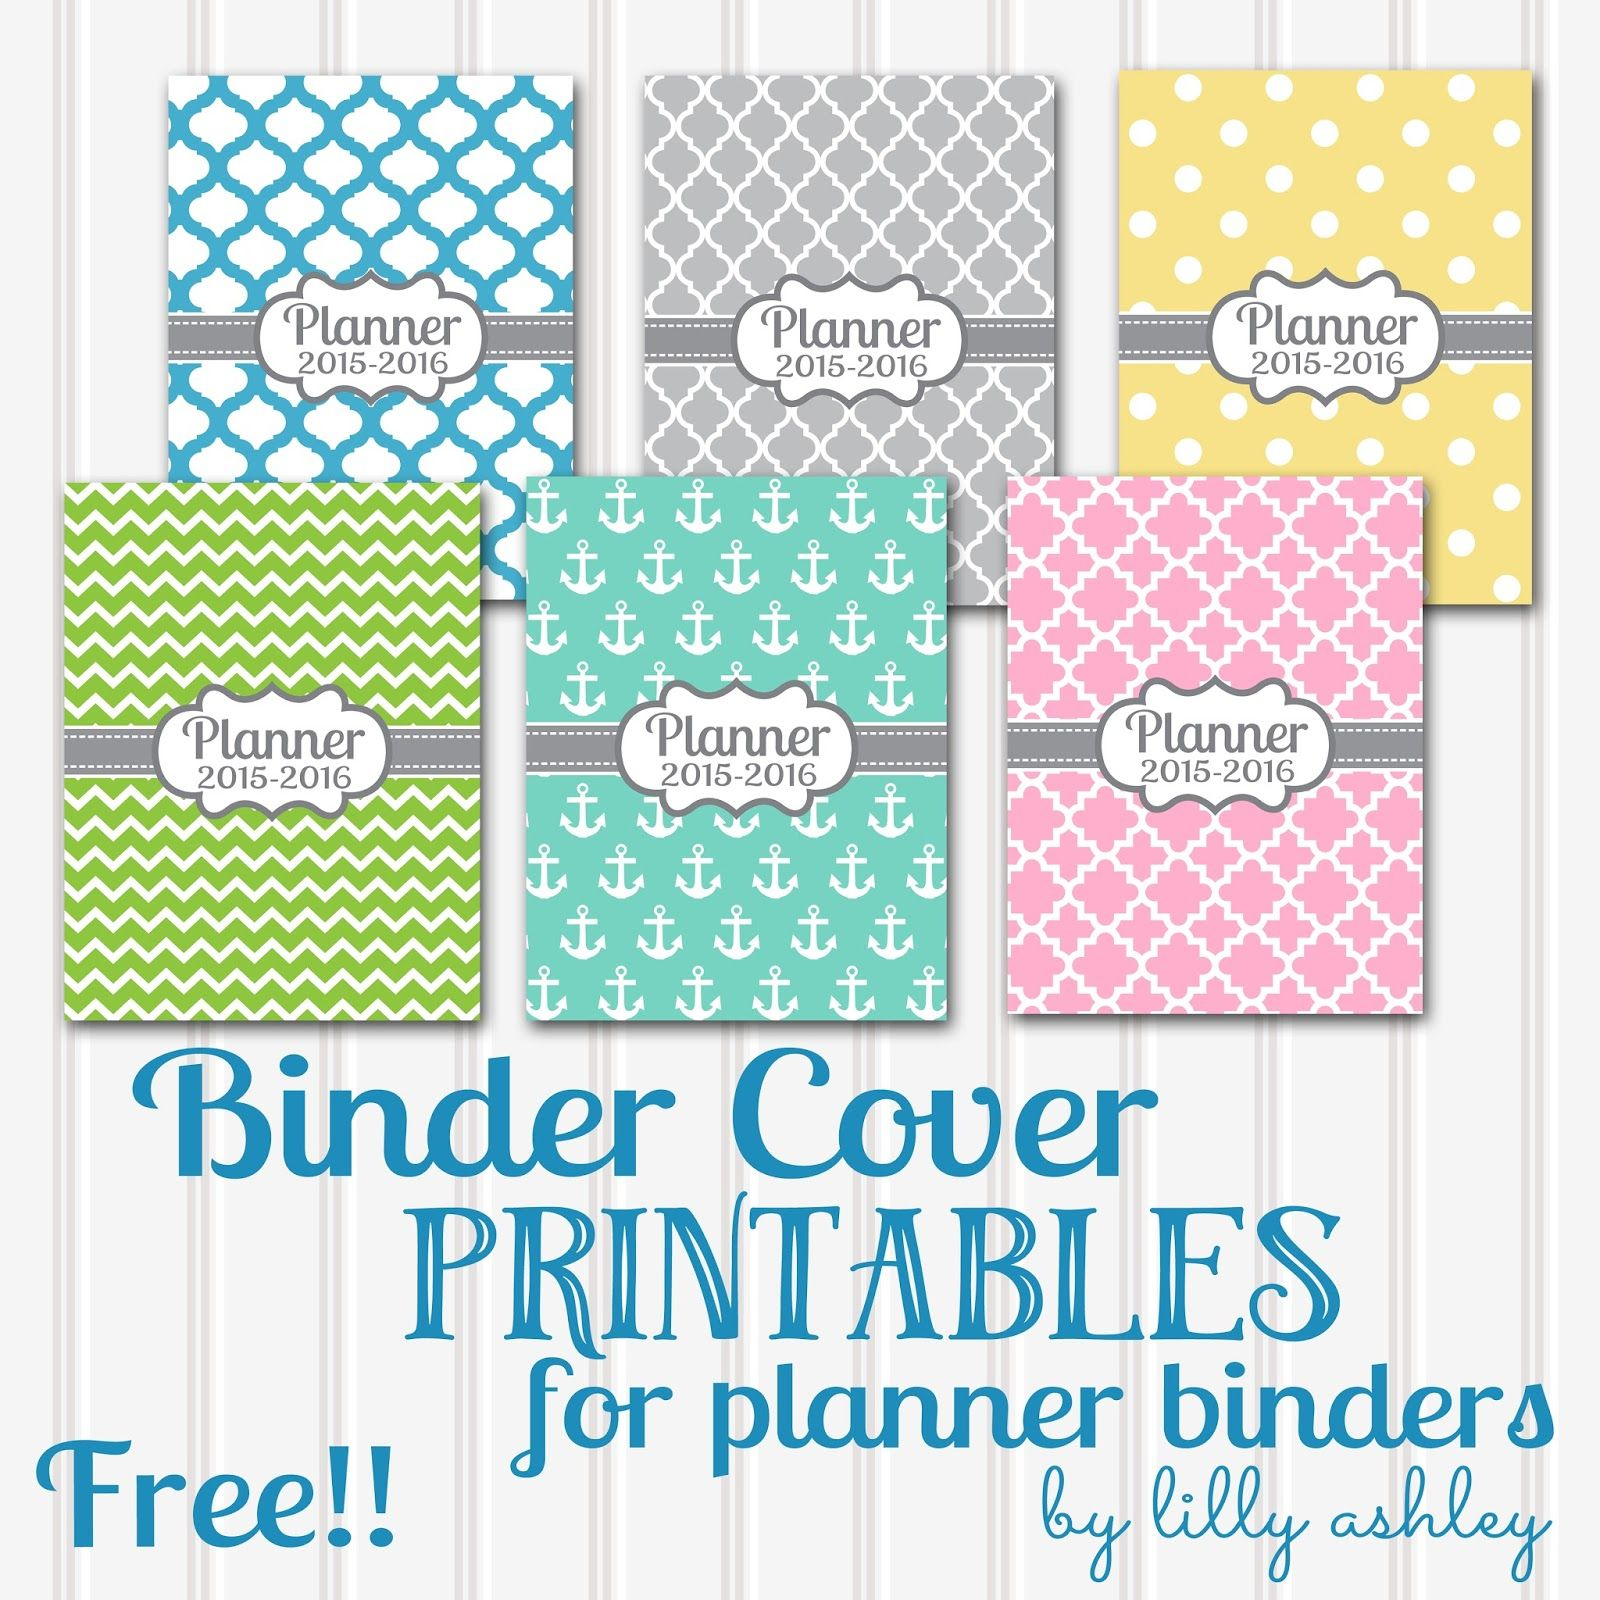 Free Printable Planner Covers...Six Styles!